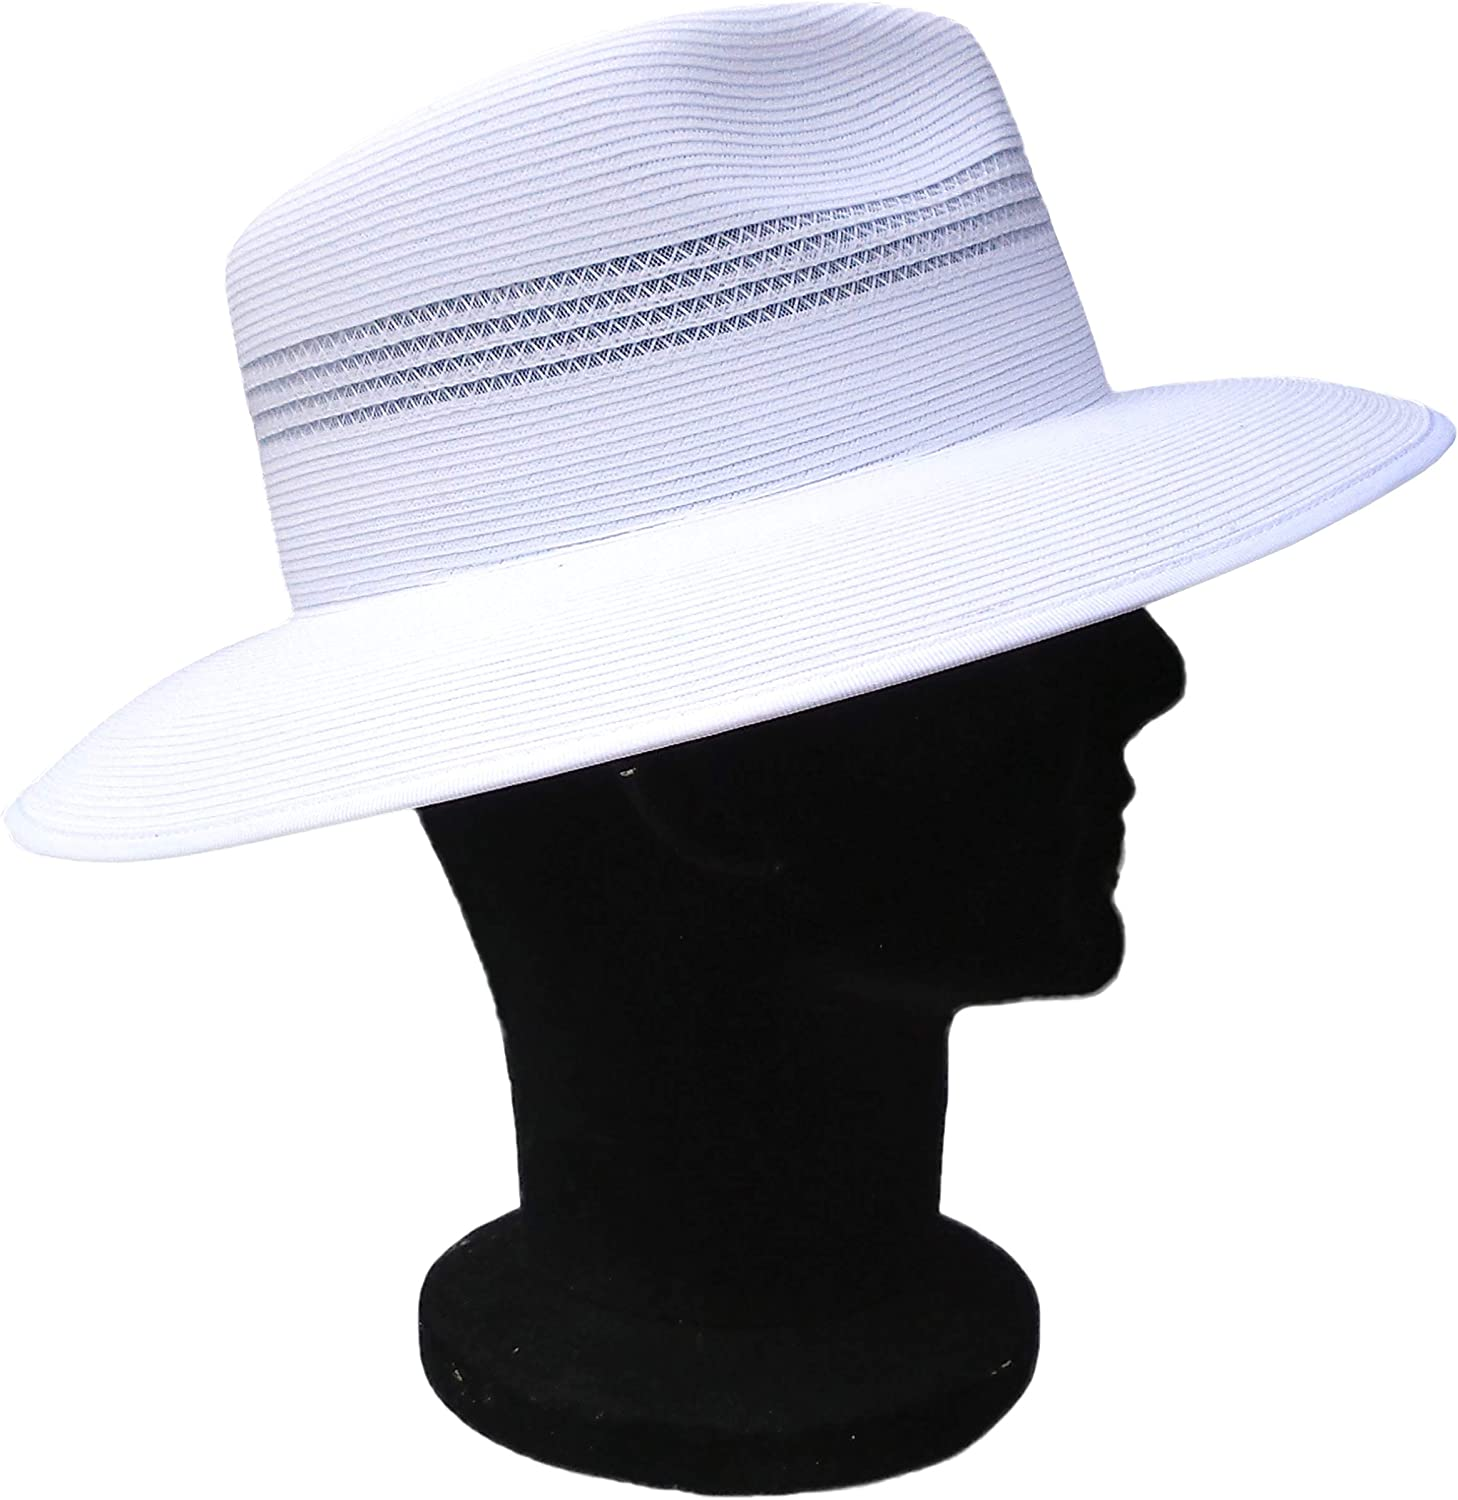 Acclaim Kalgoorlie International Cricket Umpires Hat With The Stay Put Headband /& White Hat Carrying Bag